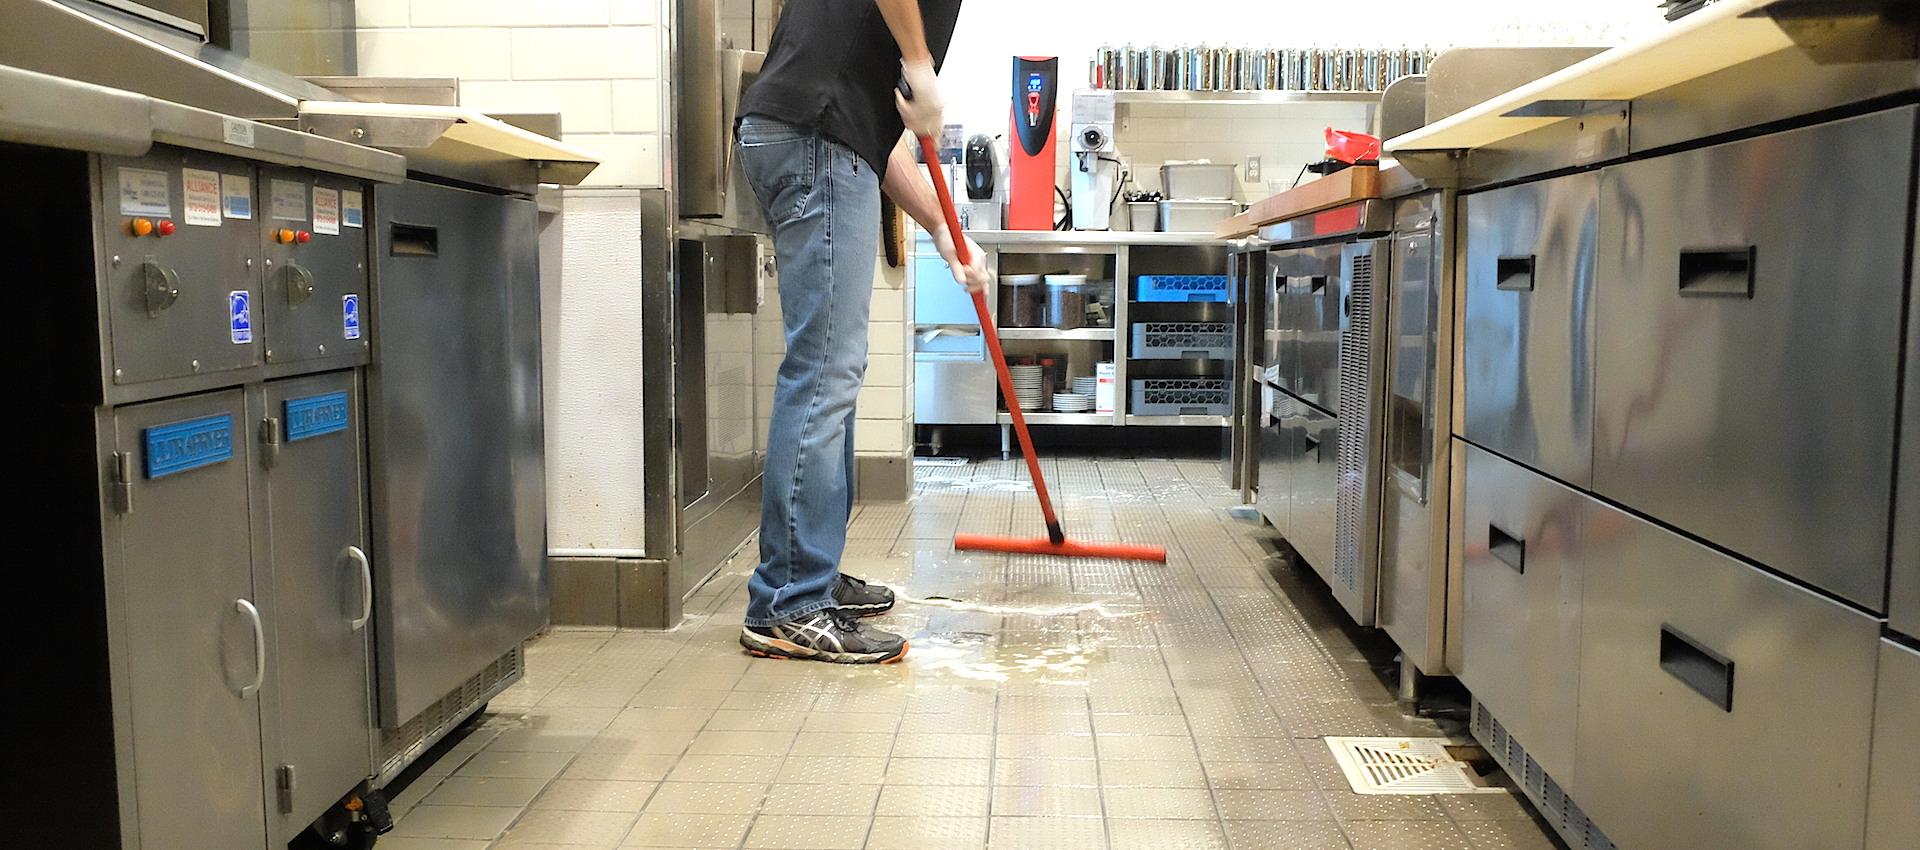 Clean Restaurant Kitchen Floor